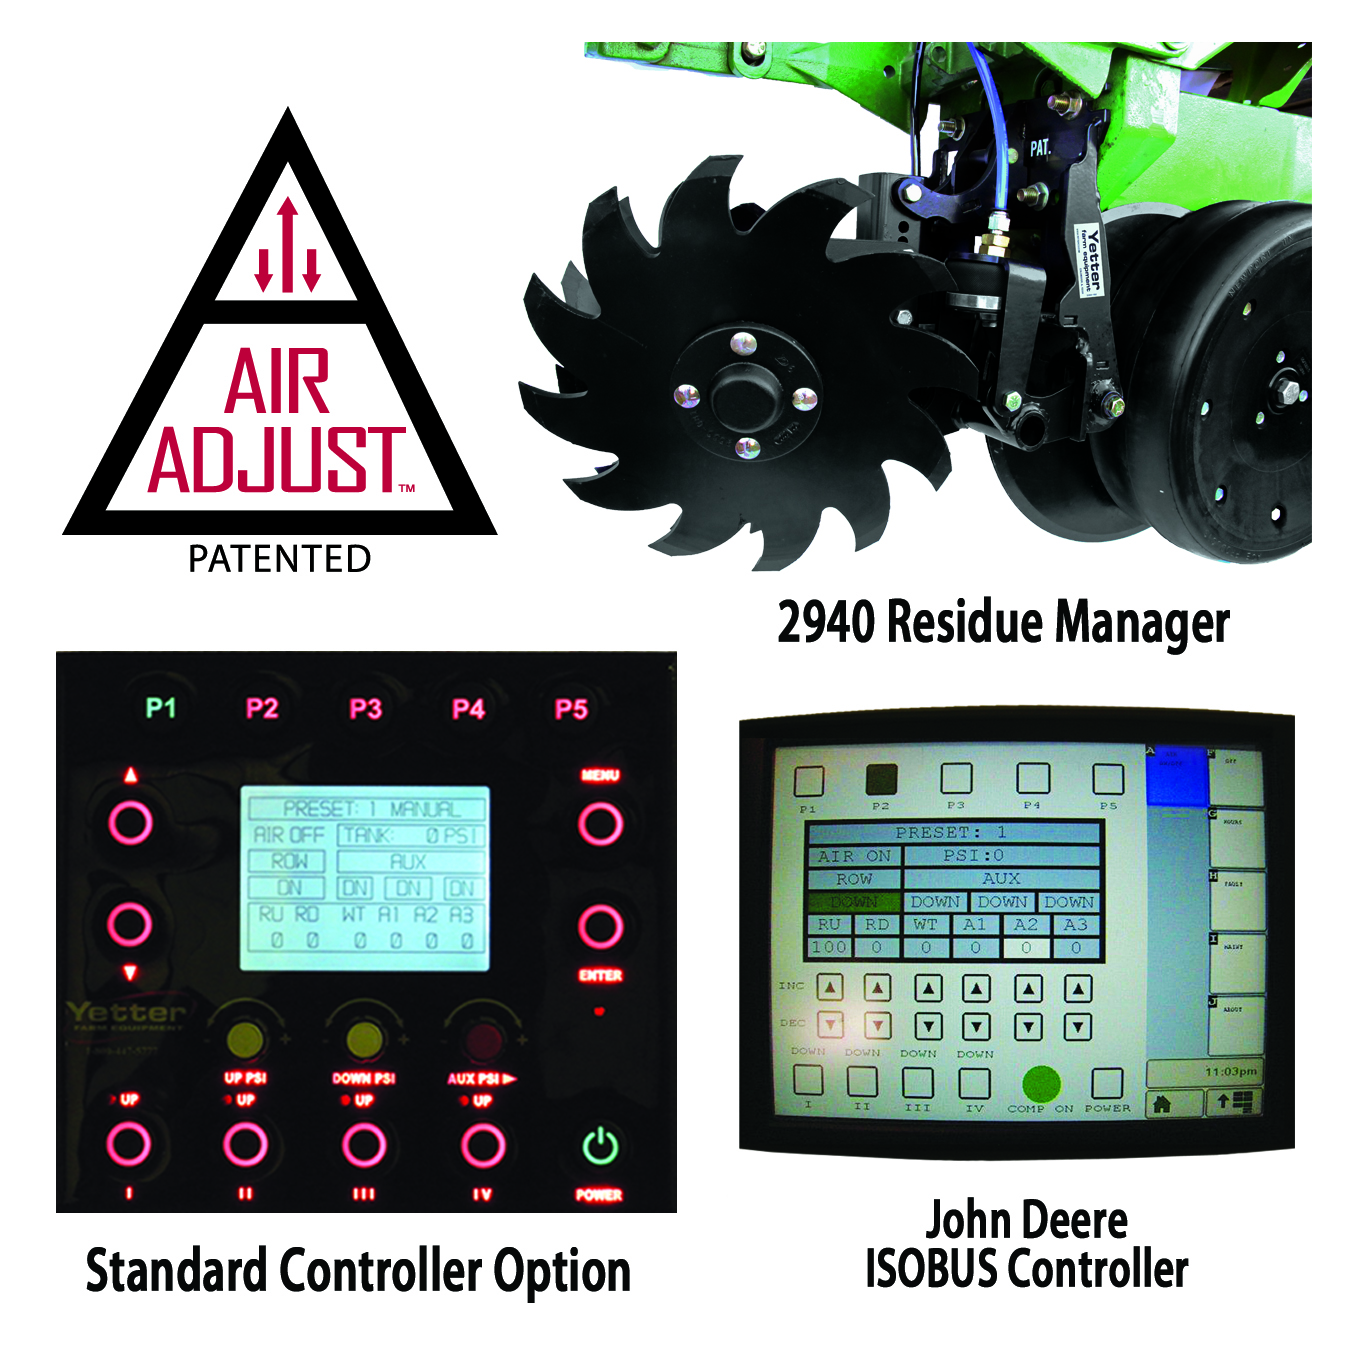 Yetter 2940 Air Adjust Series